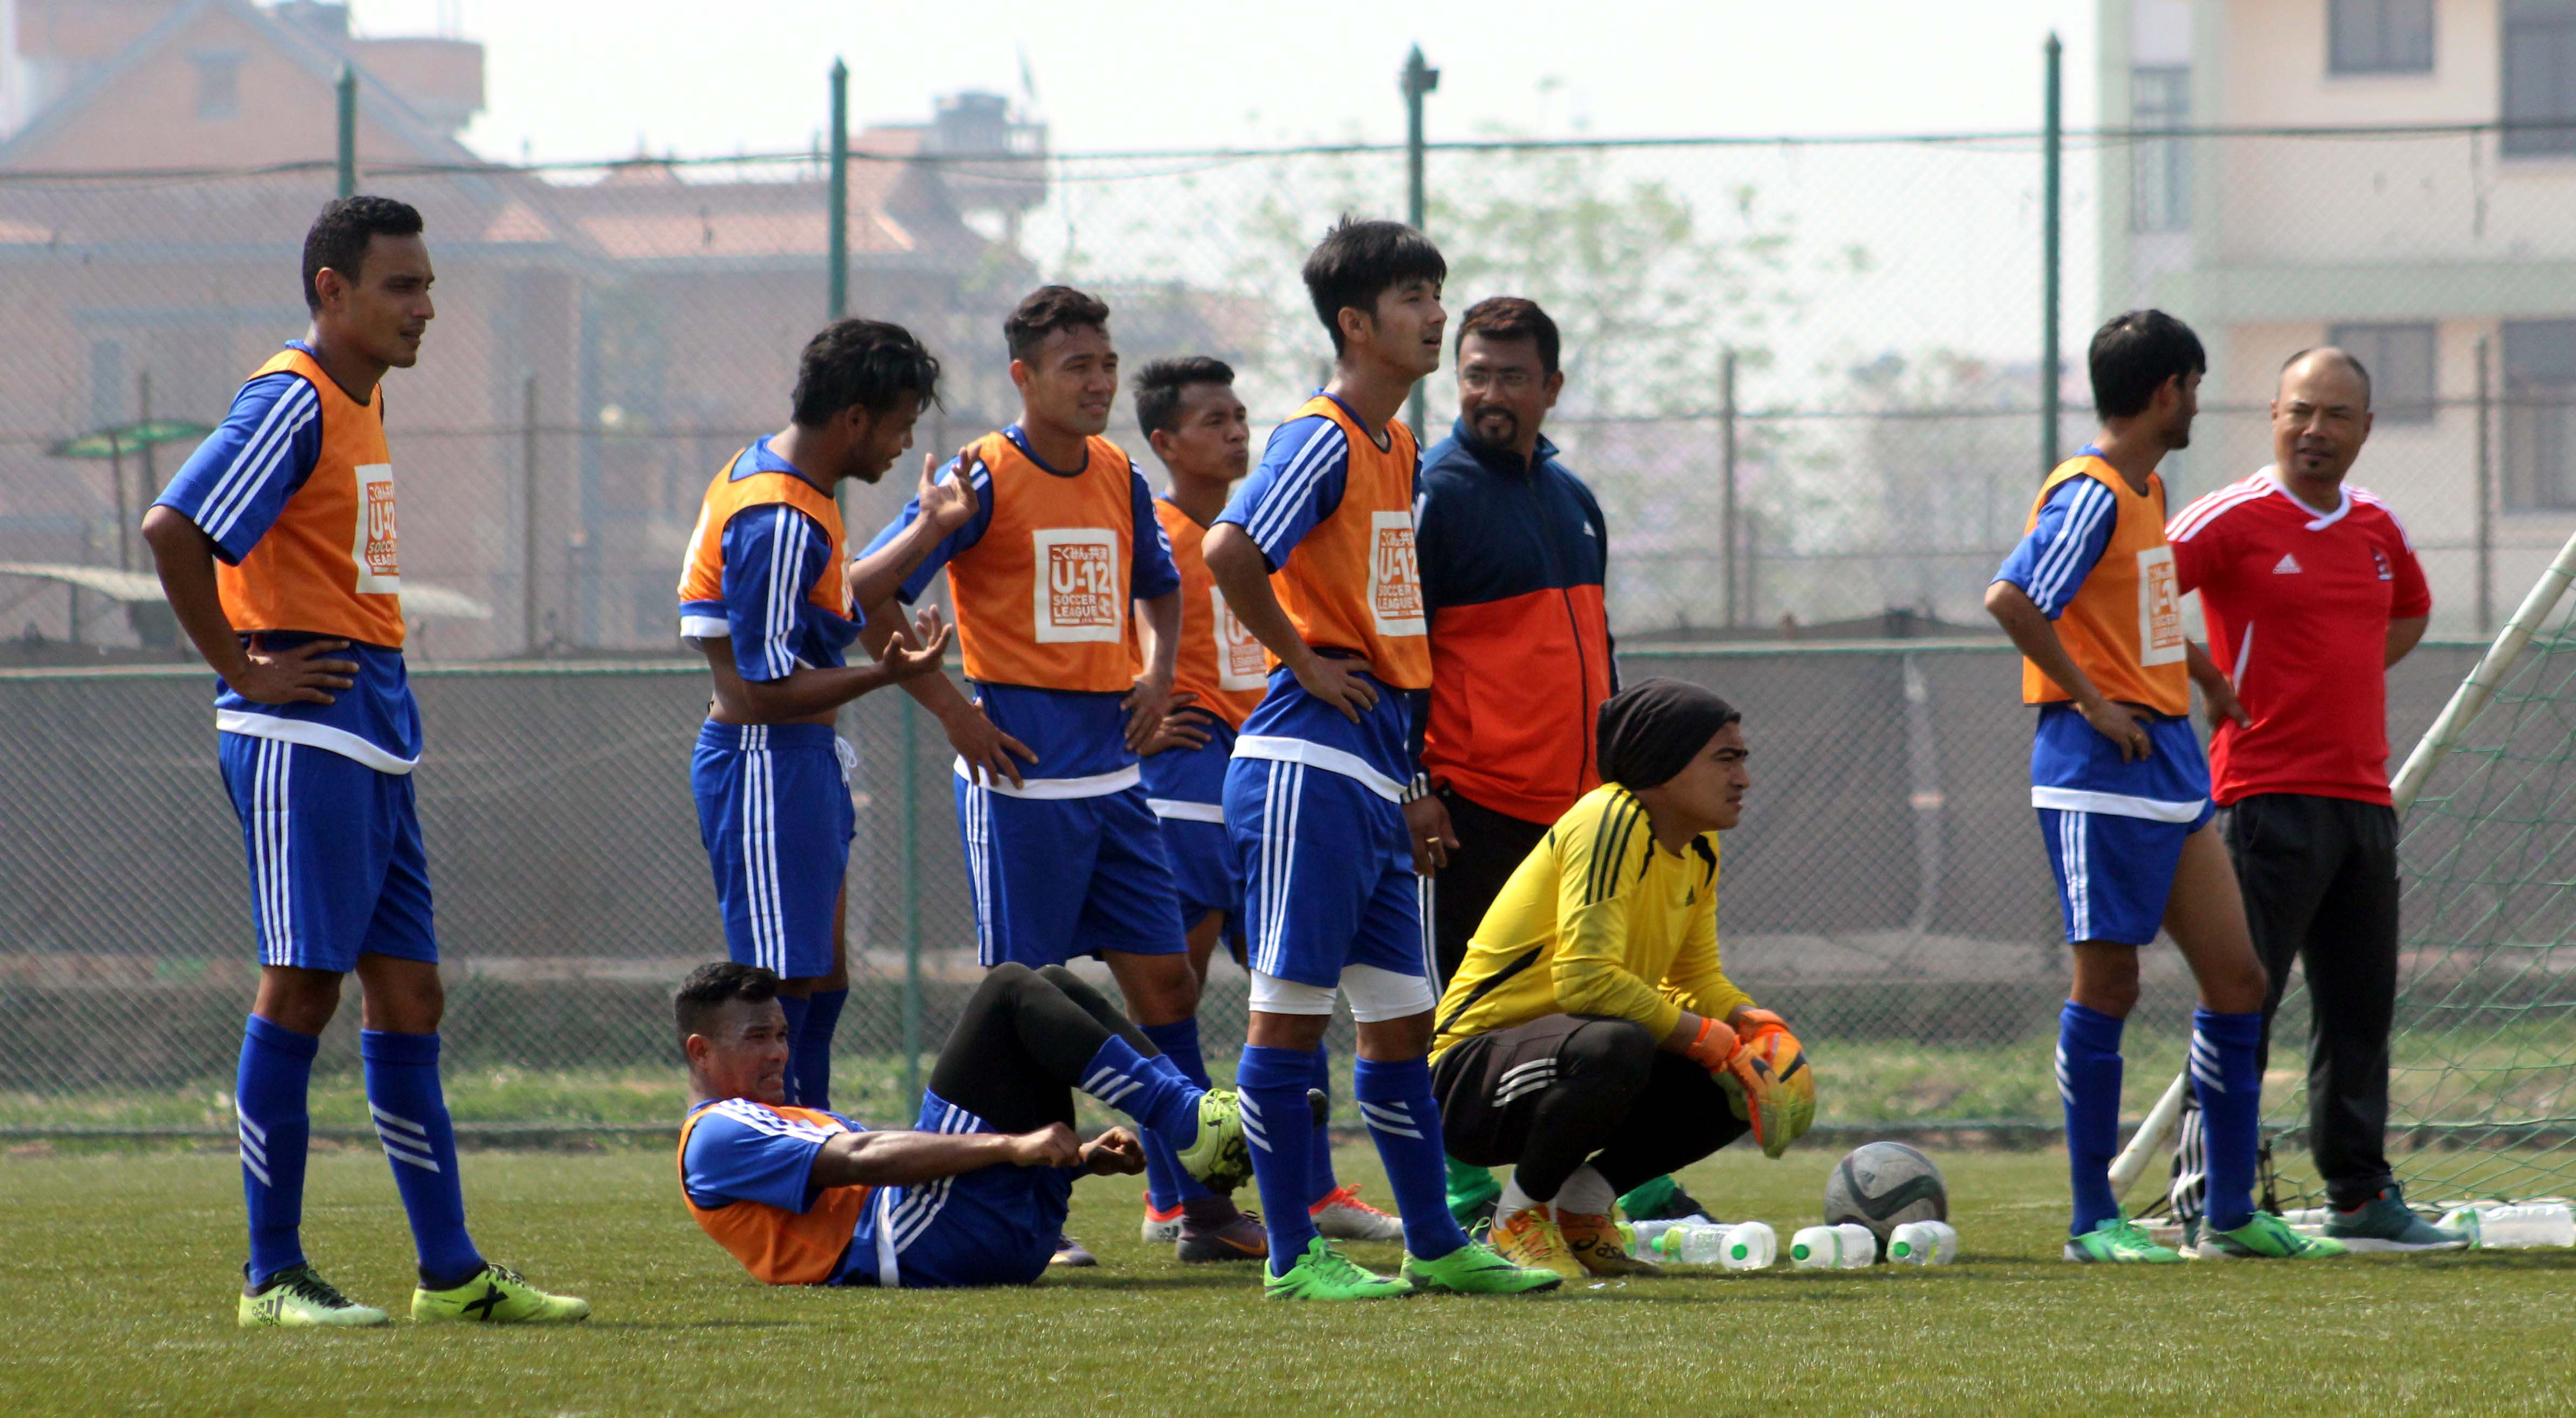 National team players attending a training session at ANFA Complex Ground, Satdobato, Lalitpur, on Tuesday, March 20, 2018. Photo Courtesy: ANFA